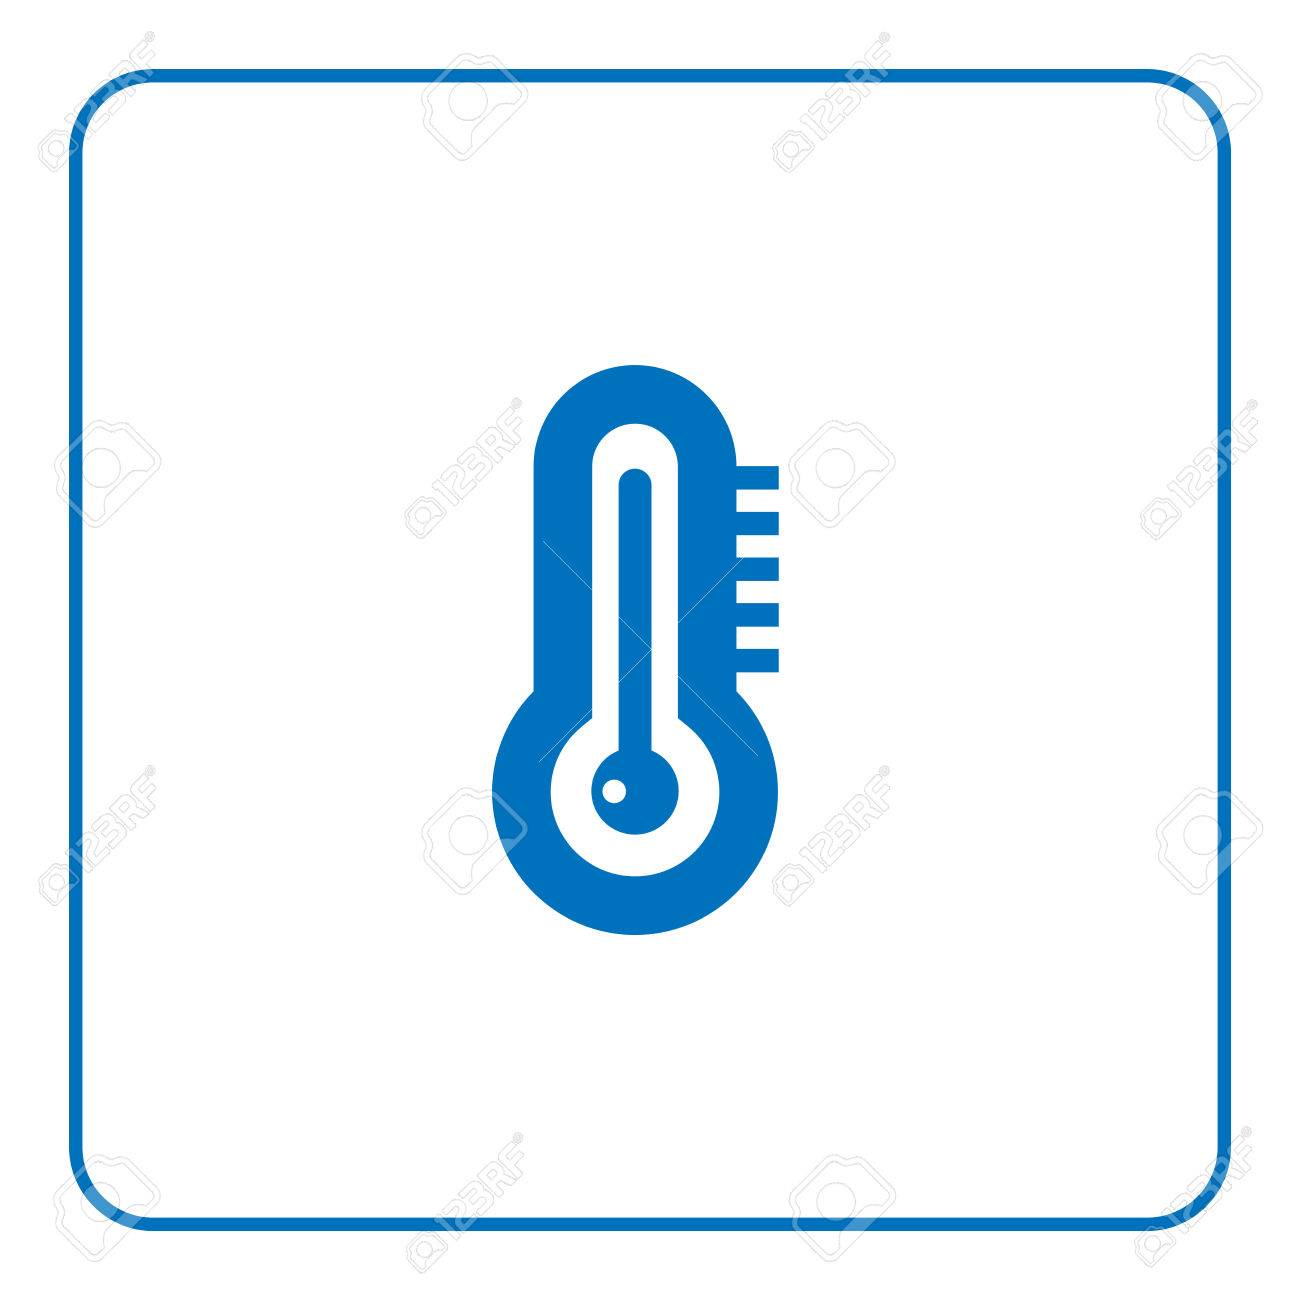 1300x1300 1 Of 25 Signs Forecast Weather Thermometer Drawing Icon. Web